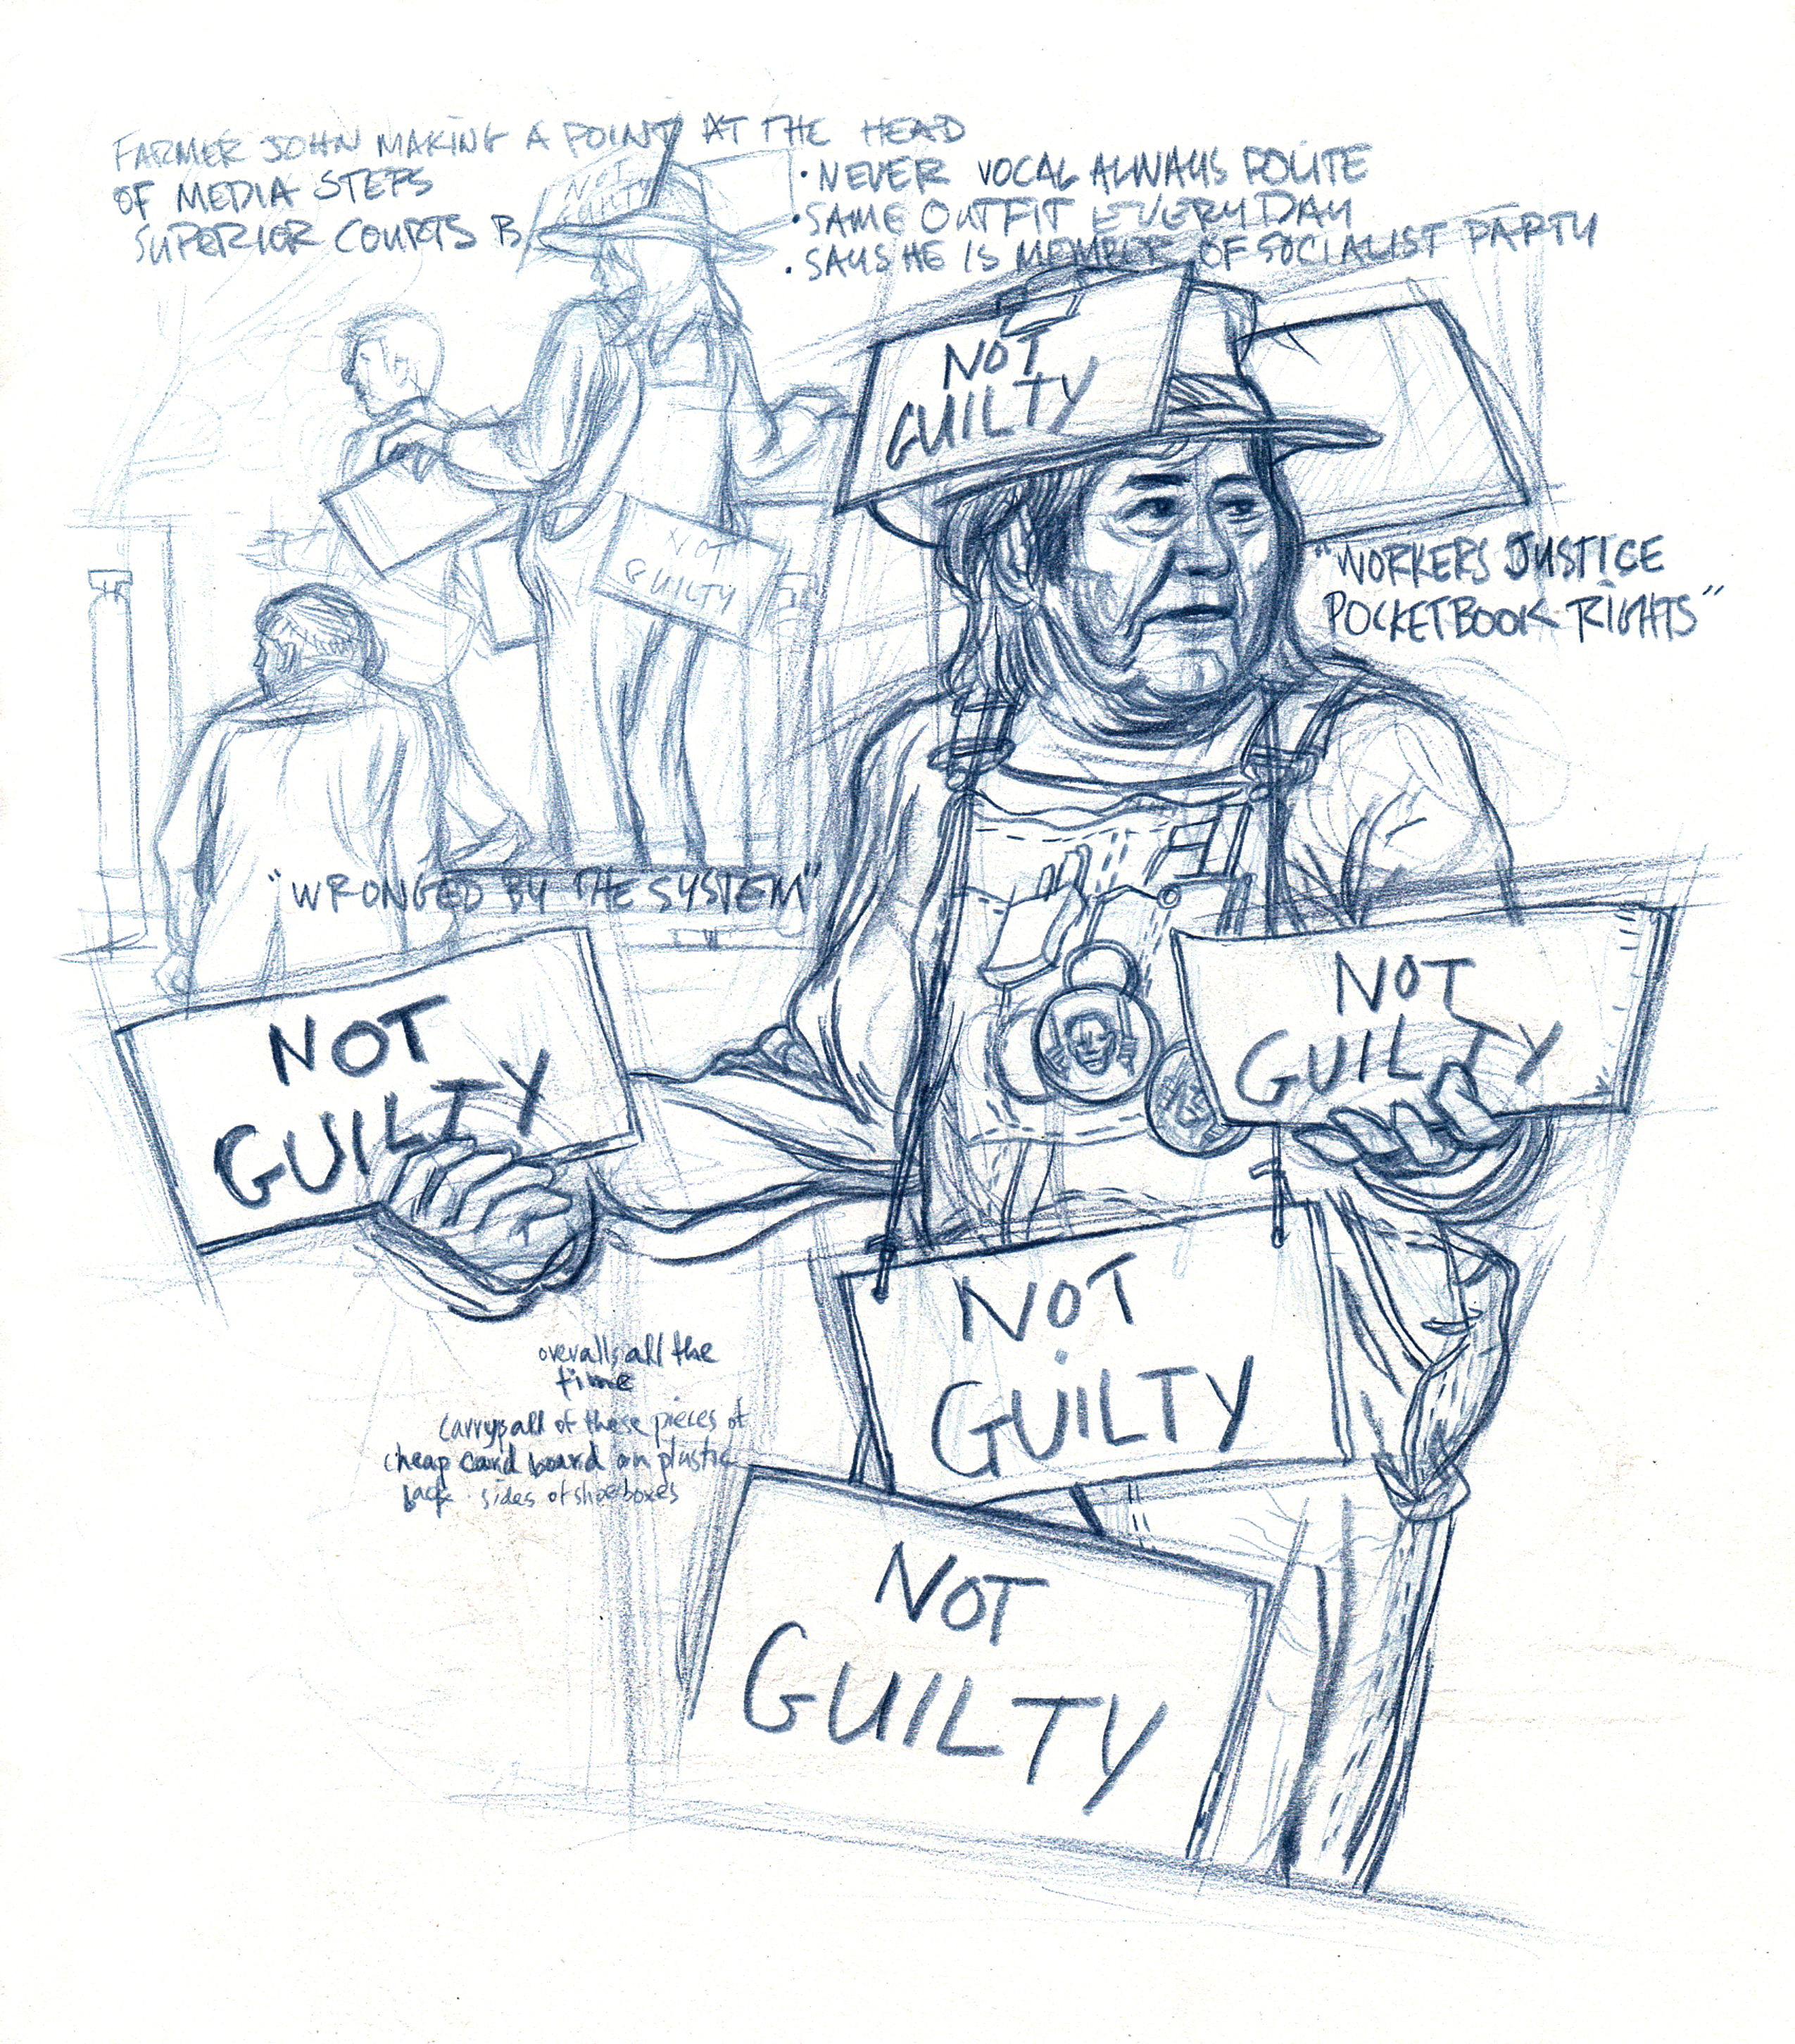 Homeless guy & not guilty signs